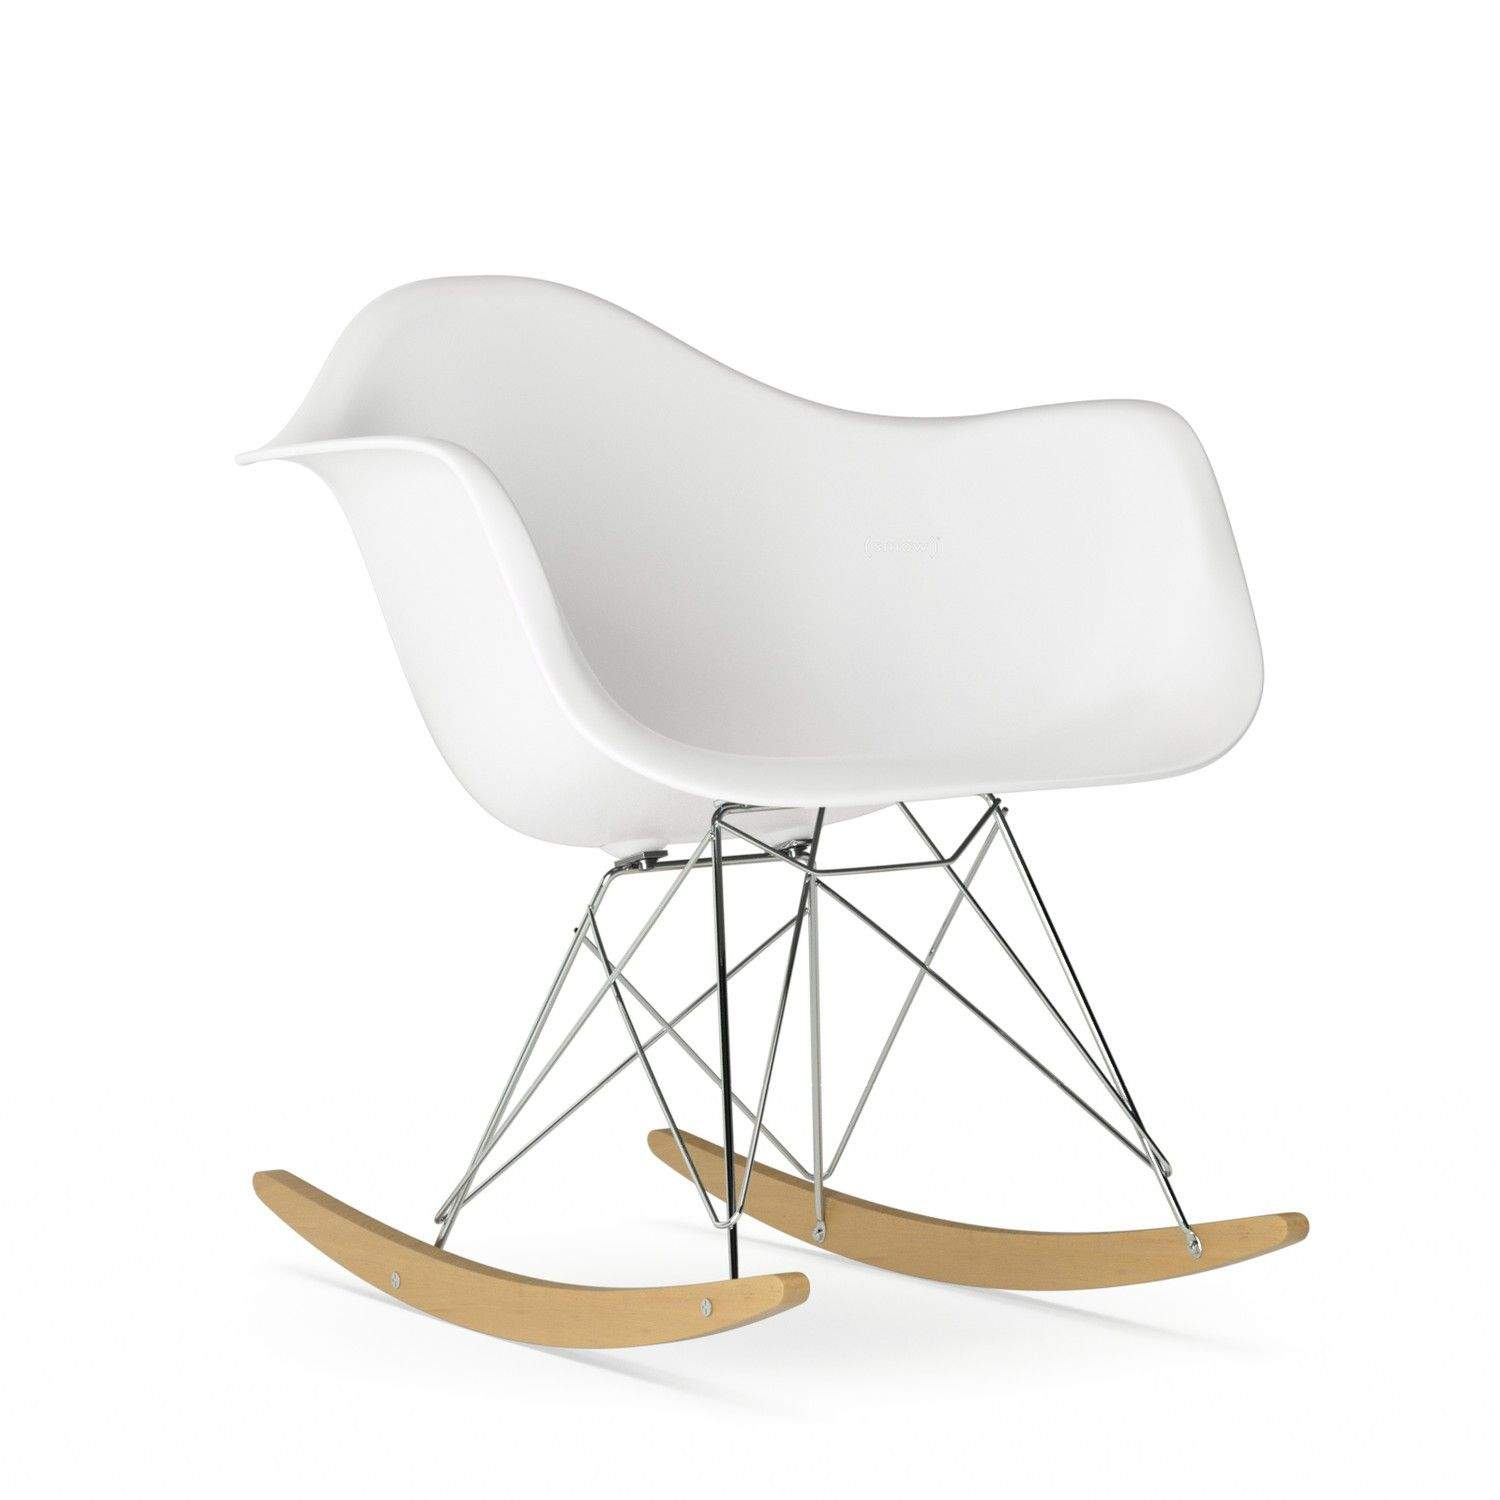 eames stuhl weiss design sthle wei plastik finest and outside active and passive is inspirierend